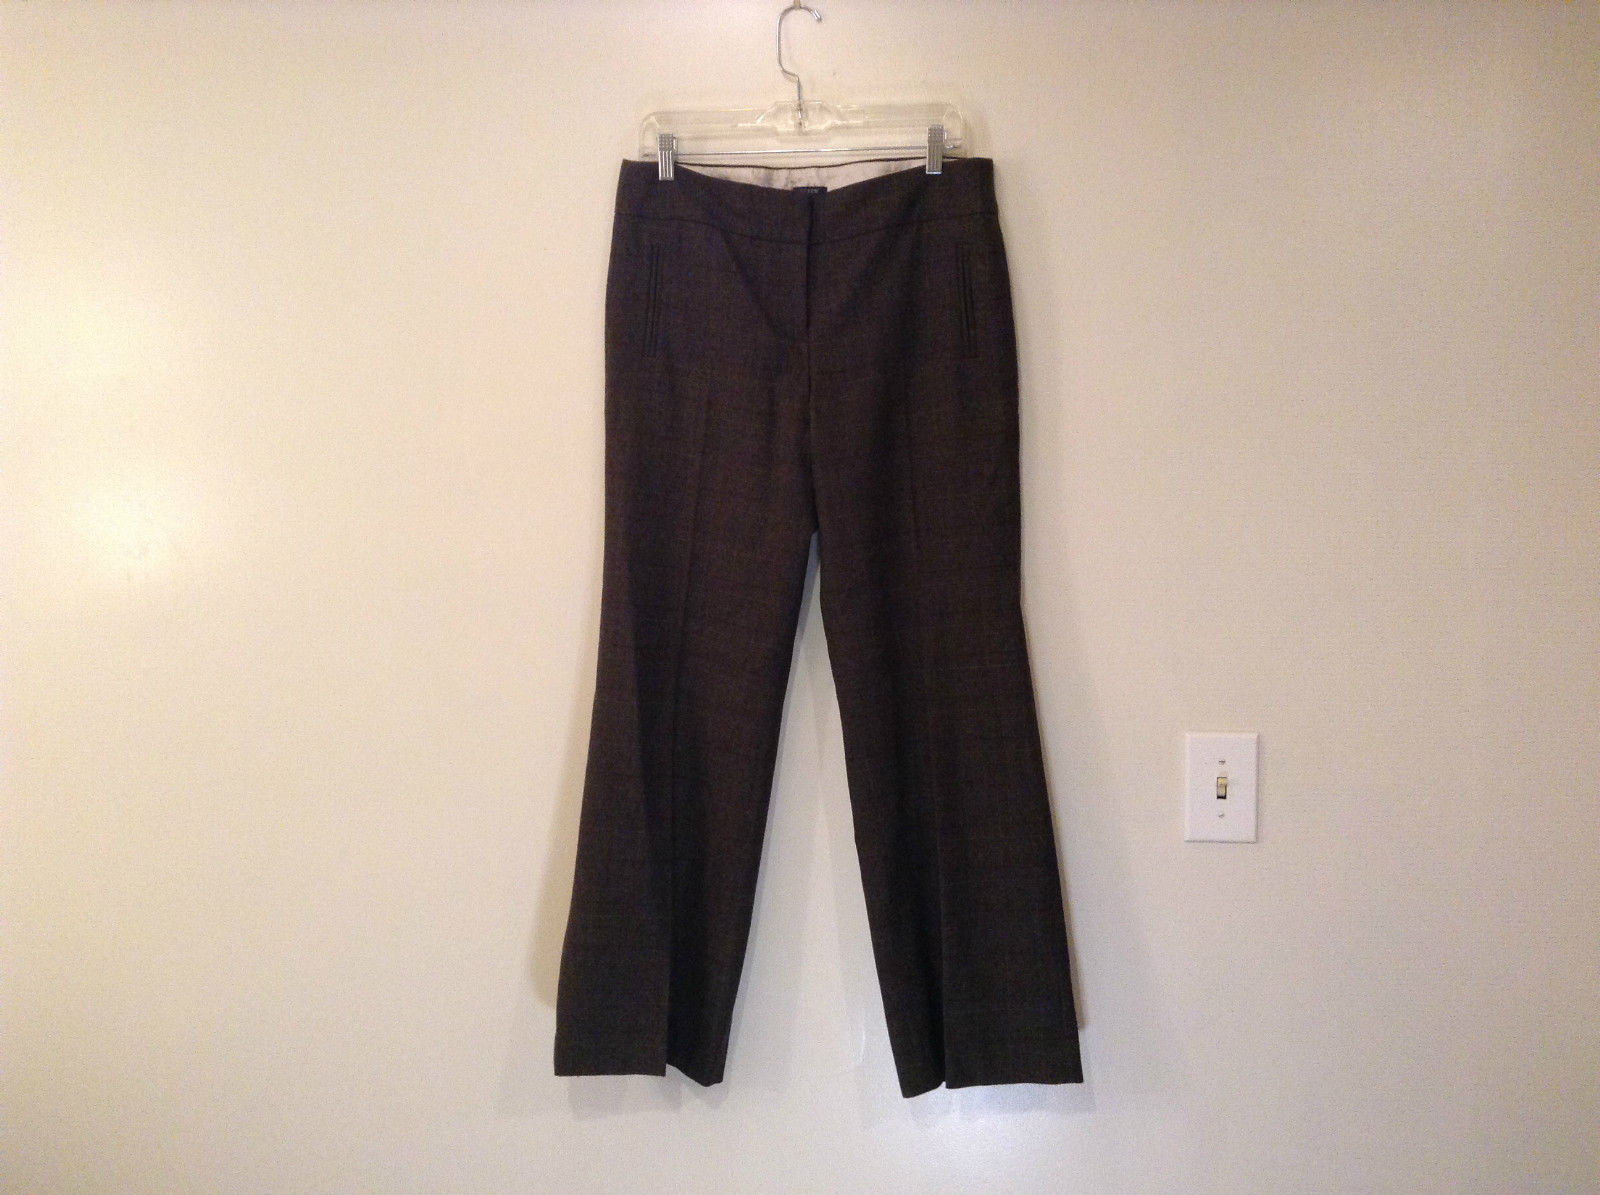 J Crew Size 10 Fully Lined Dark Gray Plaid Pattern Dress Pants Good Condition